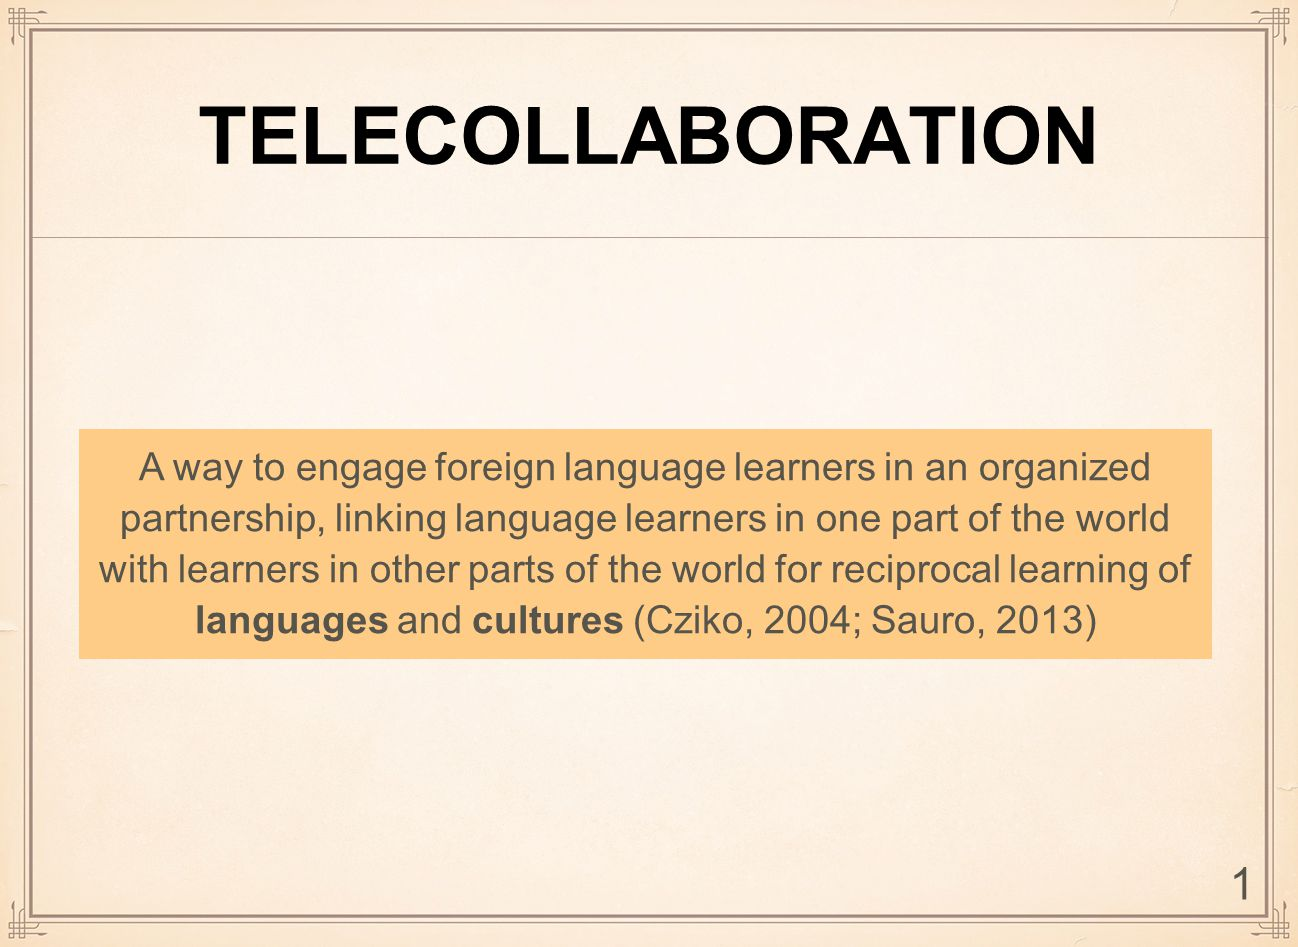 TELECOLLABORATION A way to engage foreign language learners in an organized partnership, linking language learners in one part of the world with learners in other parts of the world for reciprocal learning of languages and cultures (Cziko, 2004; Sauro, 2013) 1